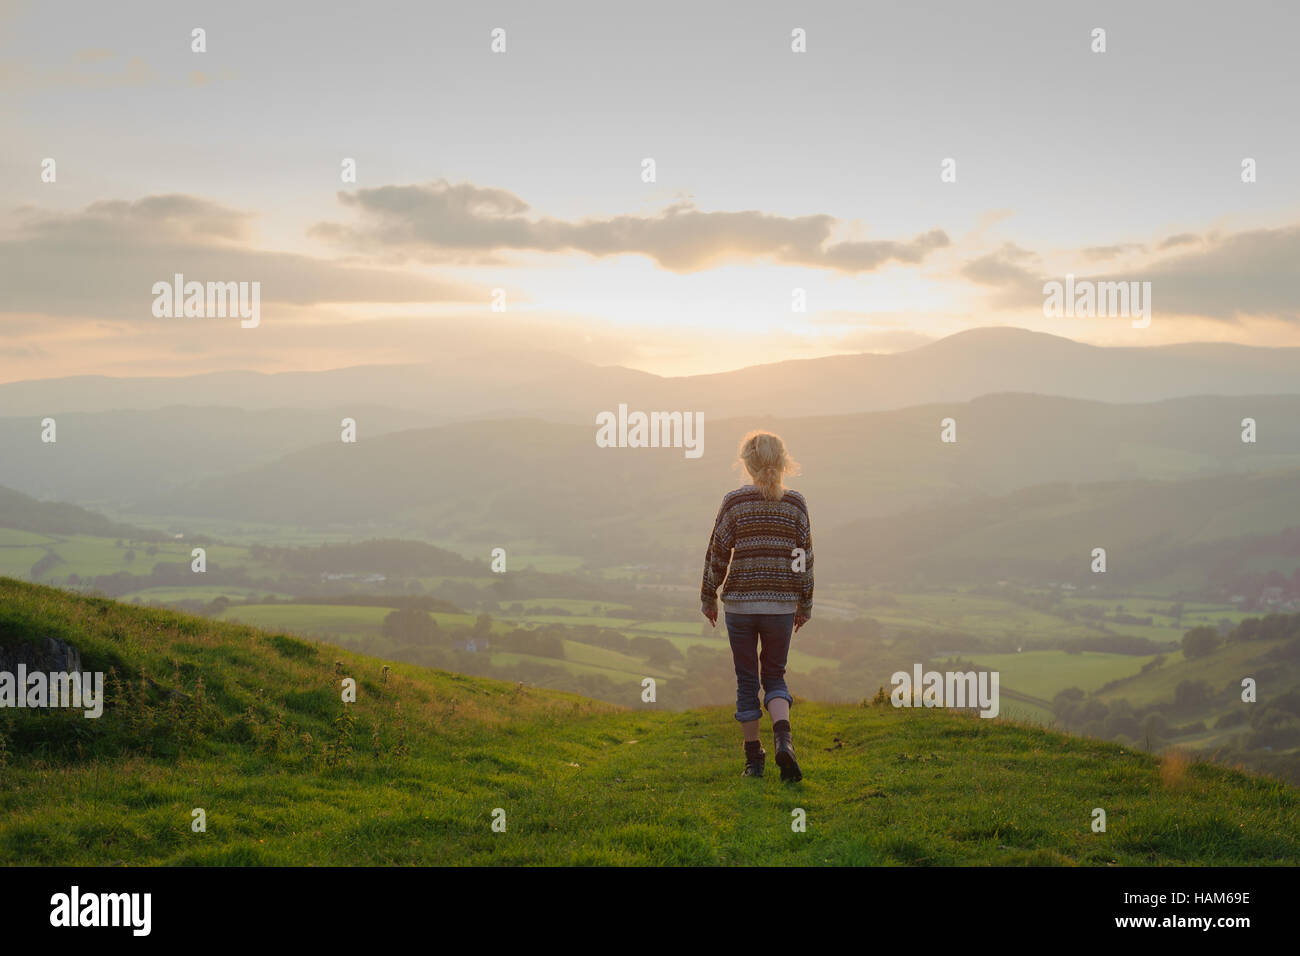 A woman walking towards a valley in the countryside - Stock Image